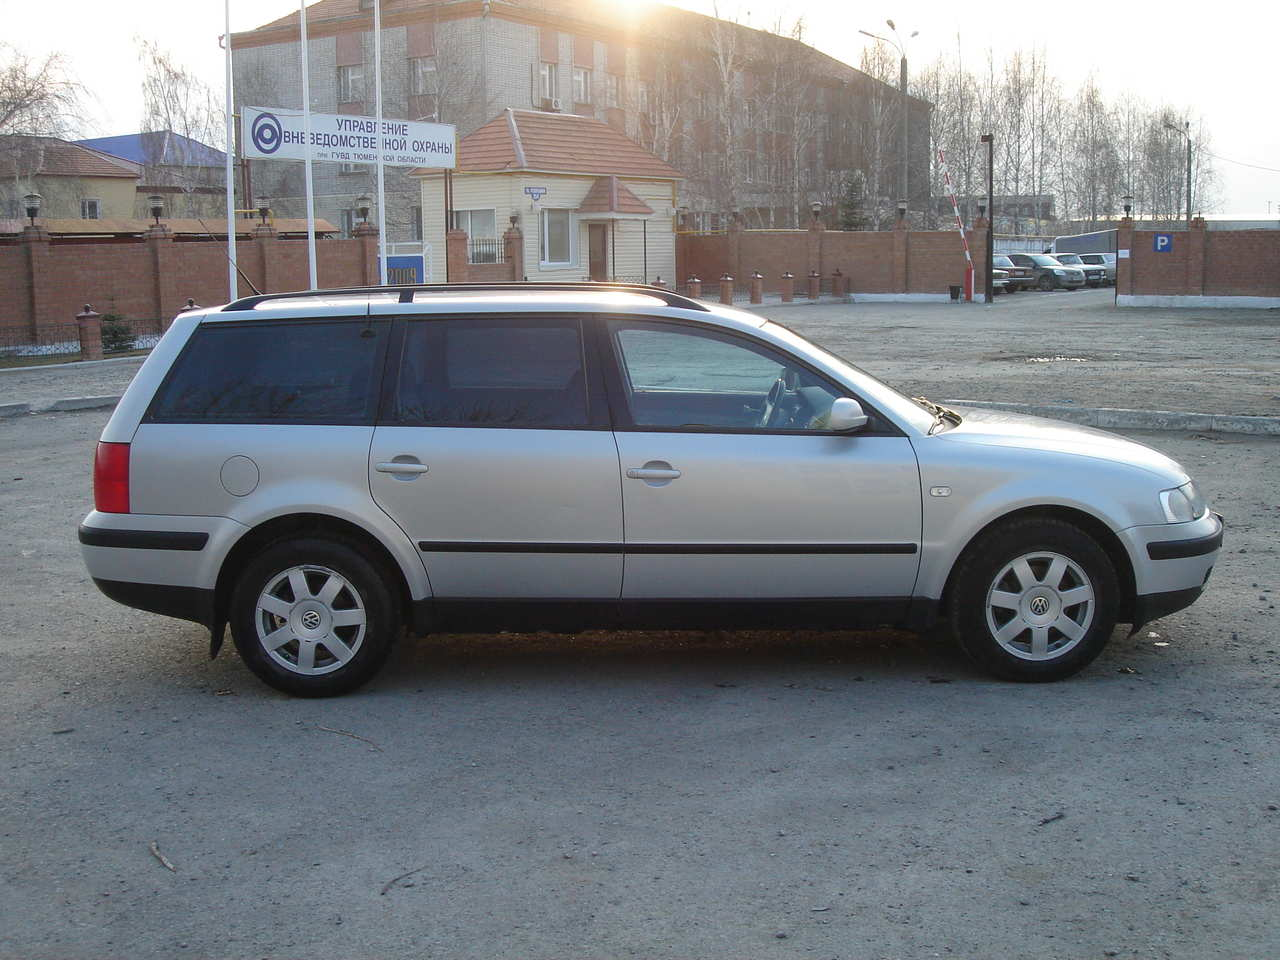 used 2000 volkswagen passat photos 1600cc gasoline ff. Black Bedroom Furniture Sets. Home Design Ideas